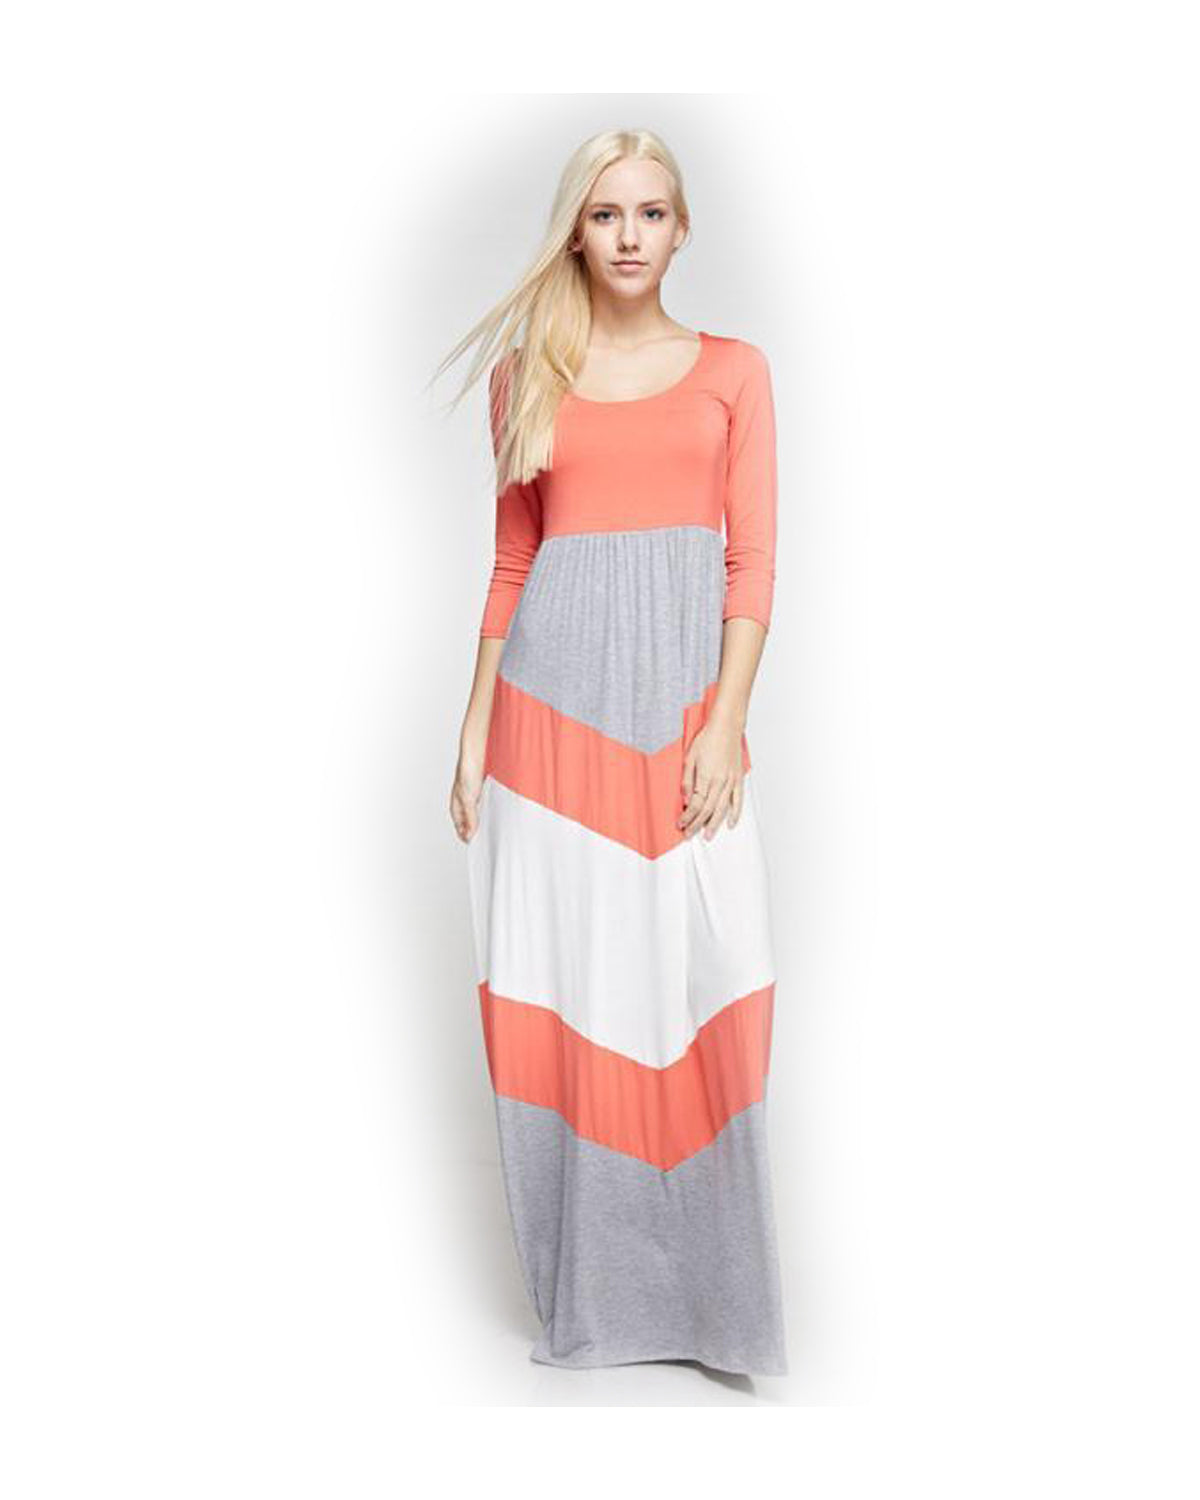 Why I Love You Chevron Maxi Dress - The Laguna Room